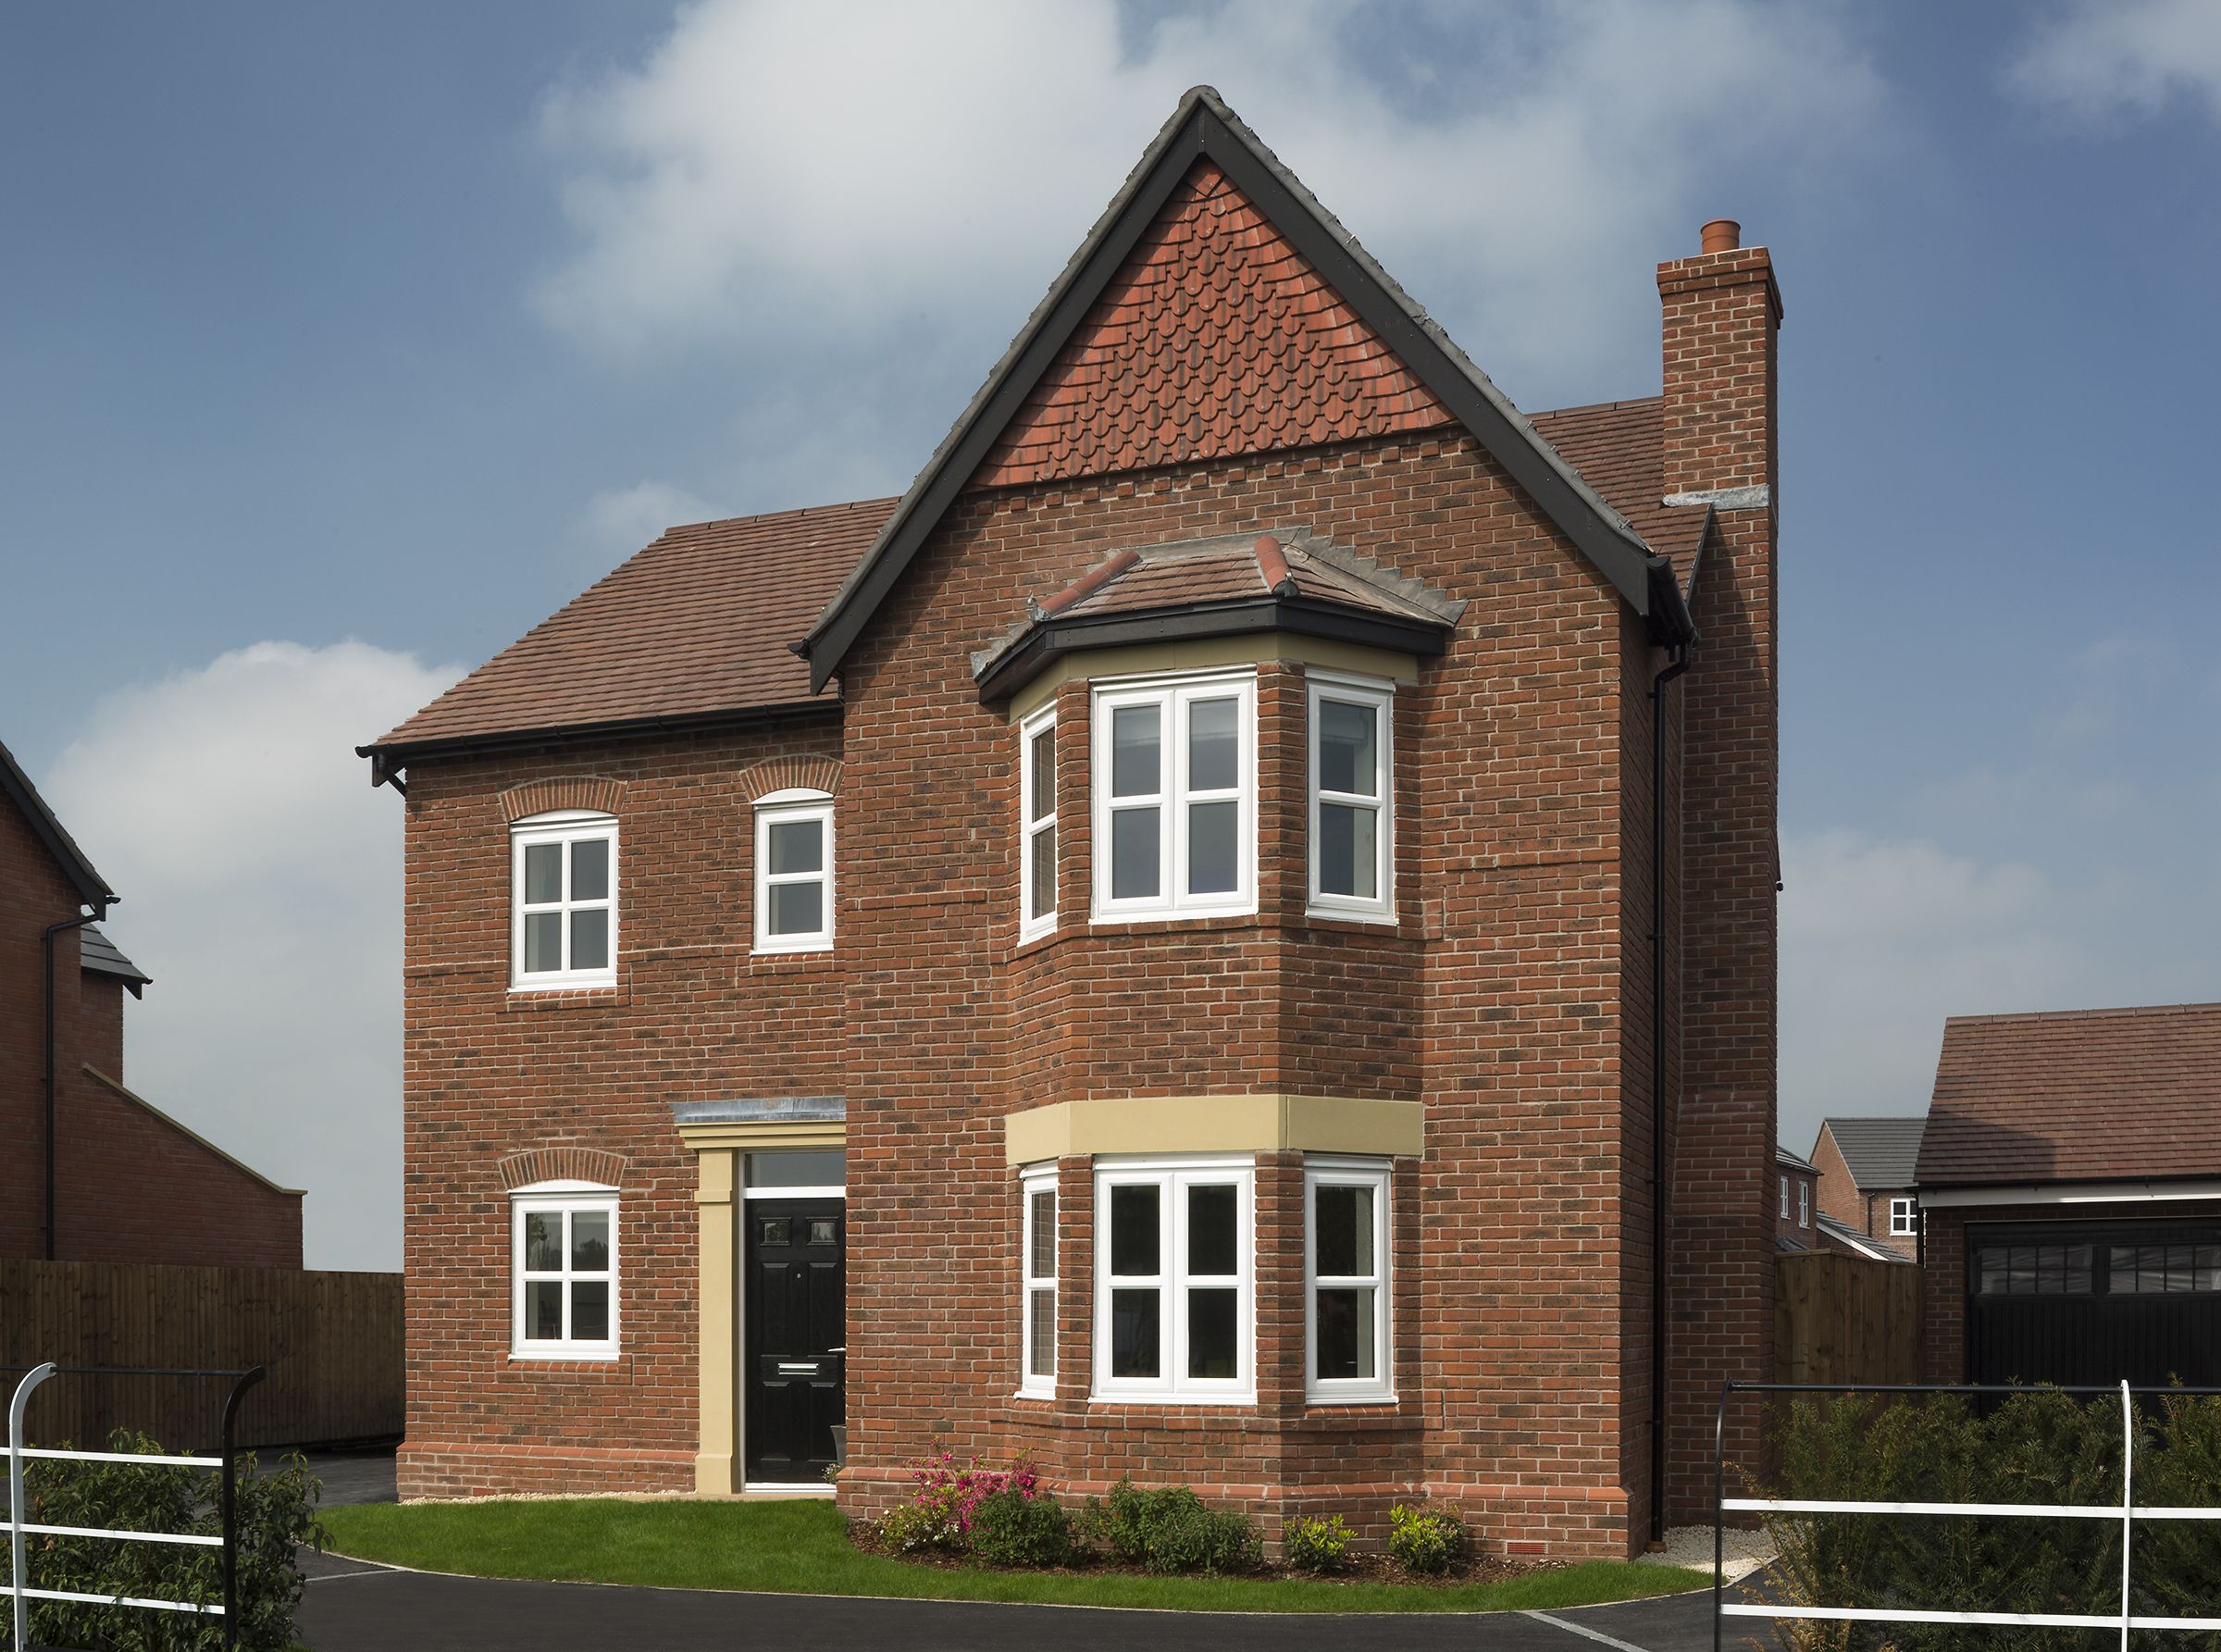 Displaying classic charm, the Willington is a four-bedroom family home with the space and design to offer flexible living choices.